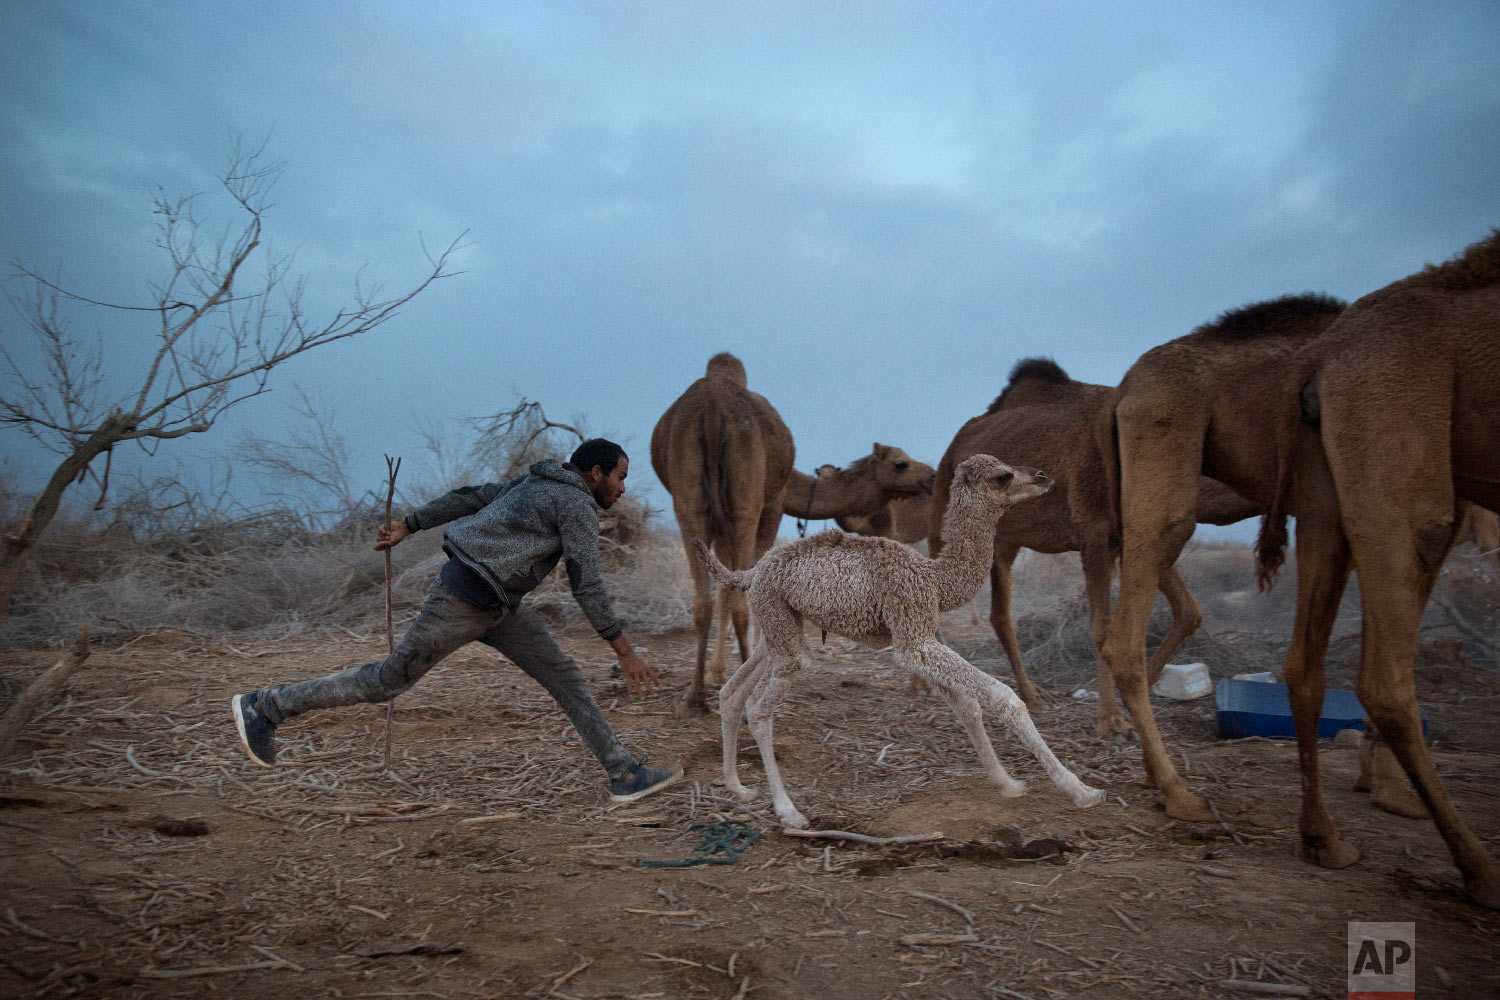 In this Monday, Jan. 22, 2018 photo, Beduin camels herder Muhammed Zarlul runs after a newborn camel as they back to the night camp after grazing all day in the open field at the territory of Israeli Kibbutz Kalya, near the Dead Sea in the West Bank. For three months a year, in the winter time Bedouin Arab herders take their 130 camels to graze on the shores of the Dead Sea, at the lowest place on Earth. (AP Photo/Oded Balilty)